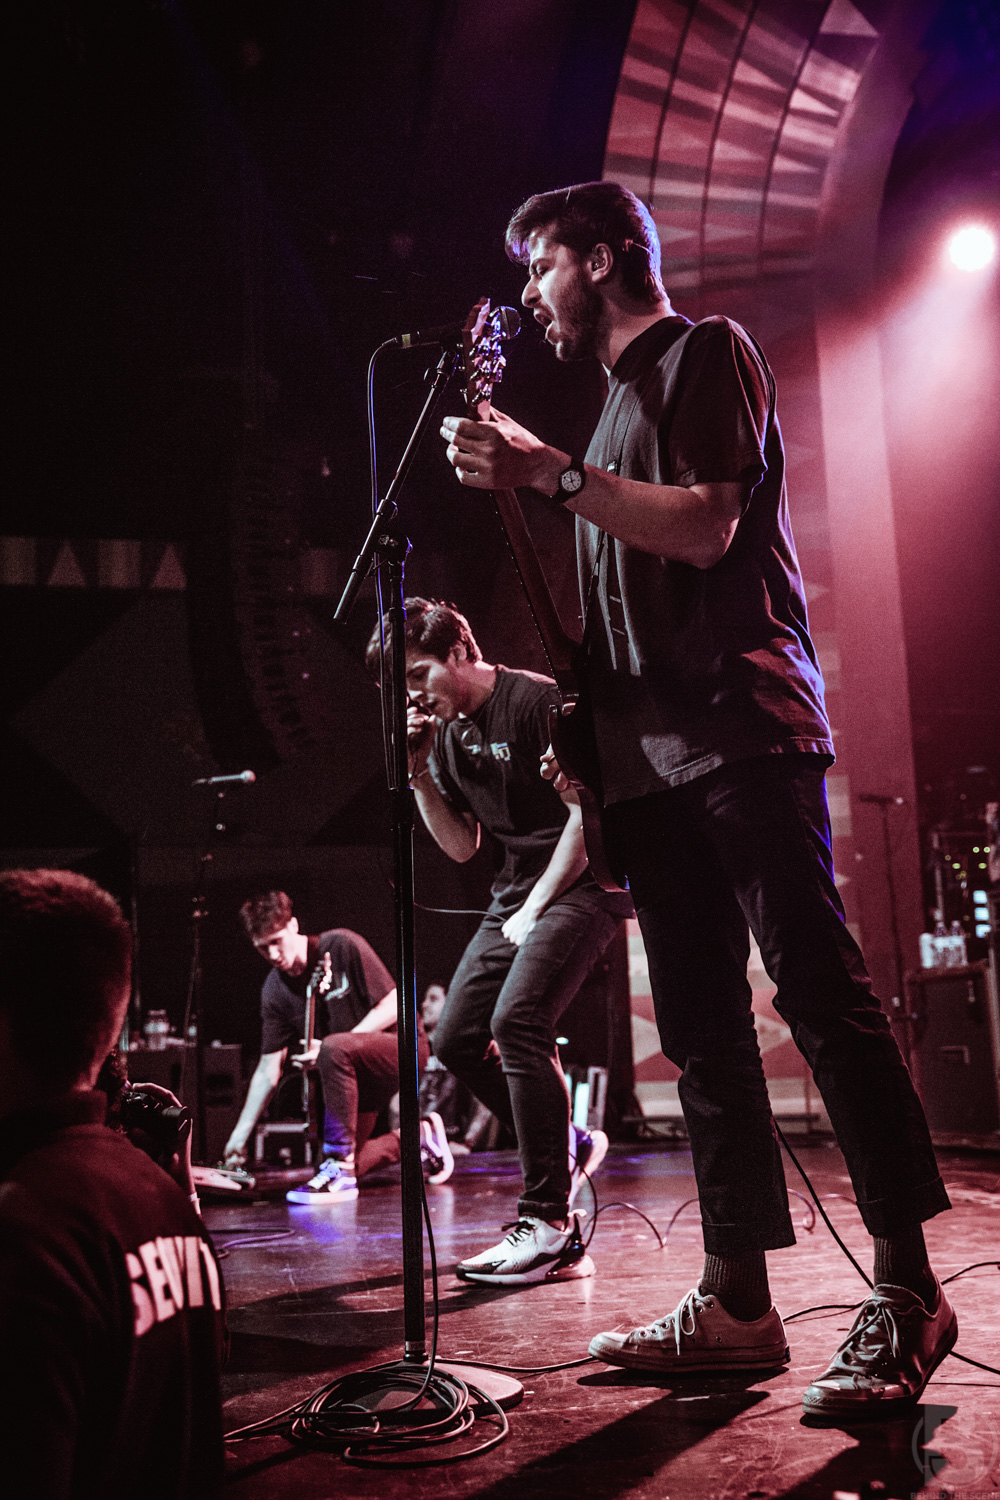 033118 Knuckle Puck 12.jpg